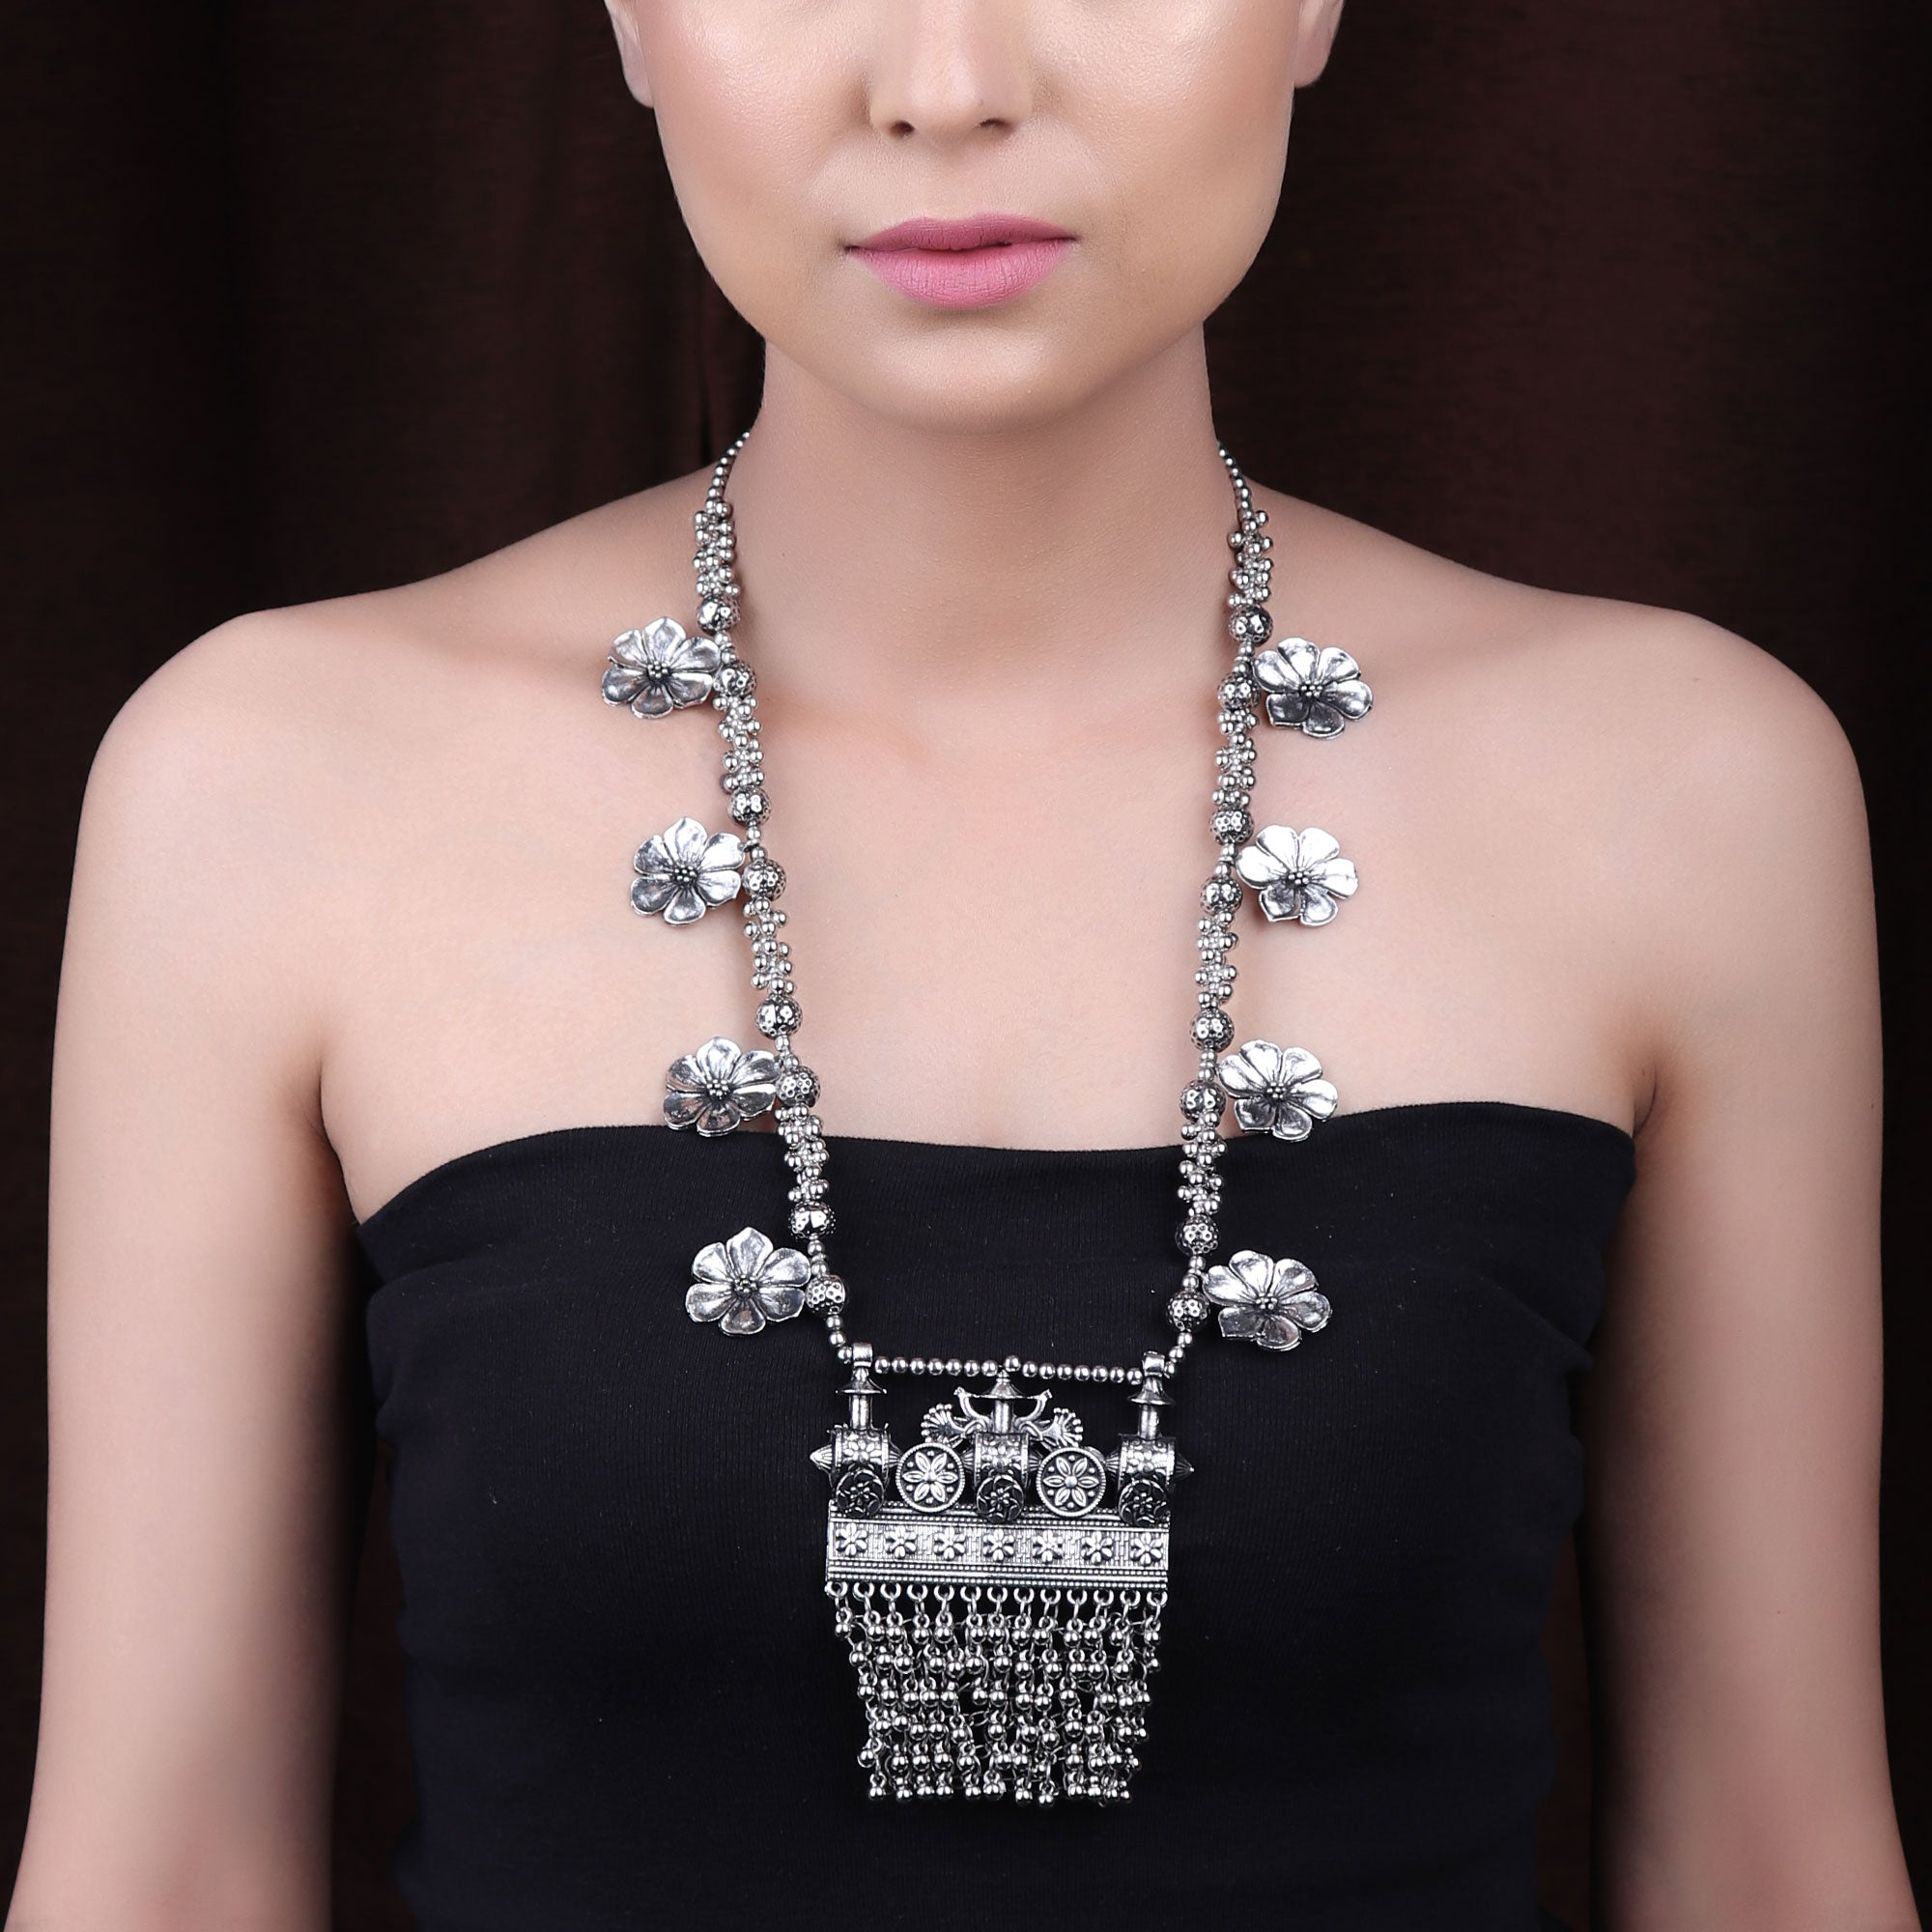 Necklace,The Imperial Treasure Necklace in Silver - Cippele Multi Store